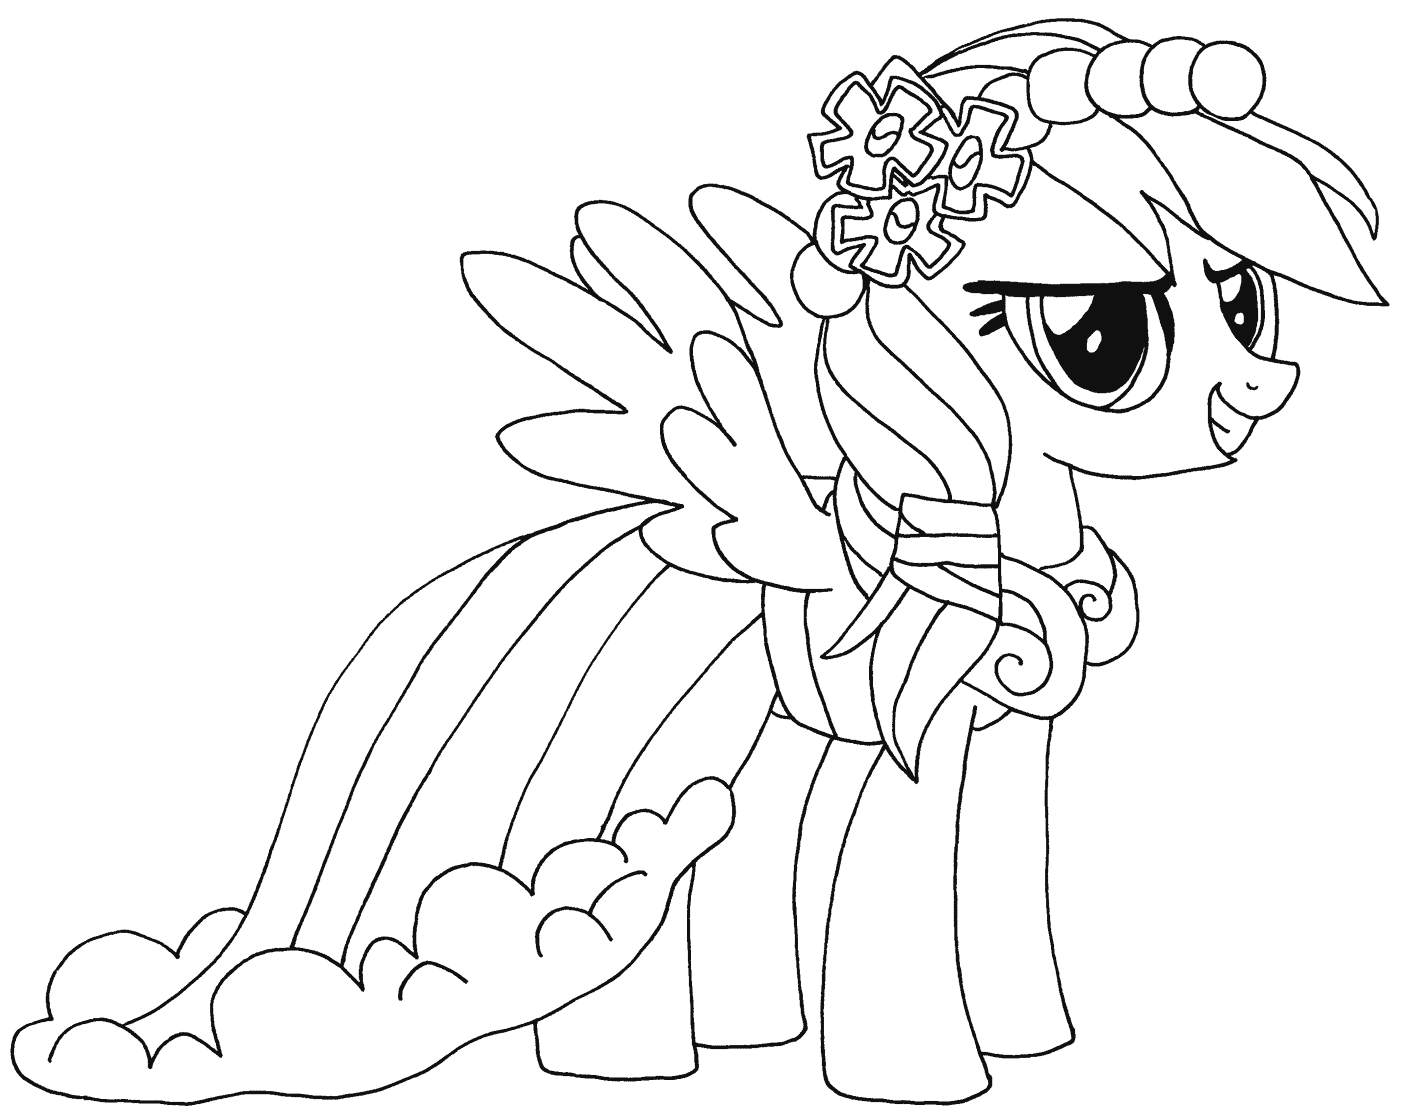 rainbow dash pictures to color rainbow dash coloring pages best coloring pages for kids rainbow color pictures dash to